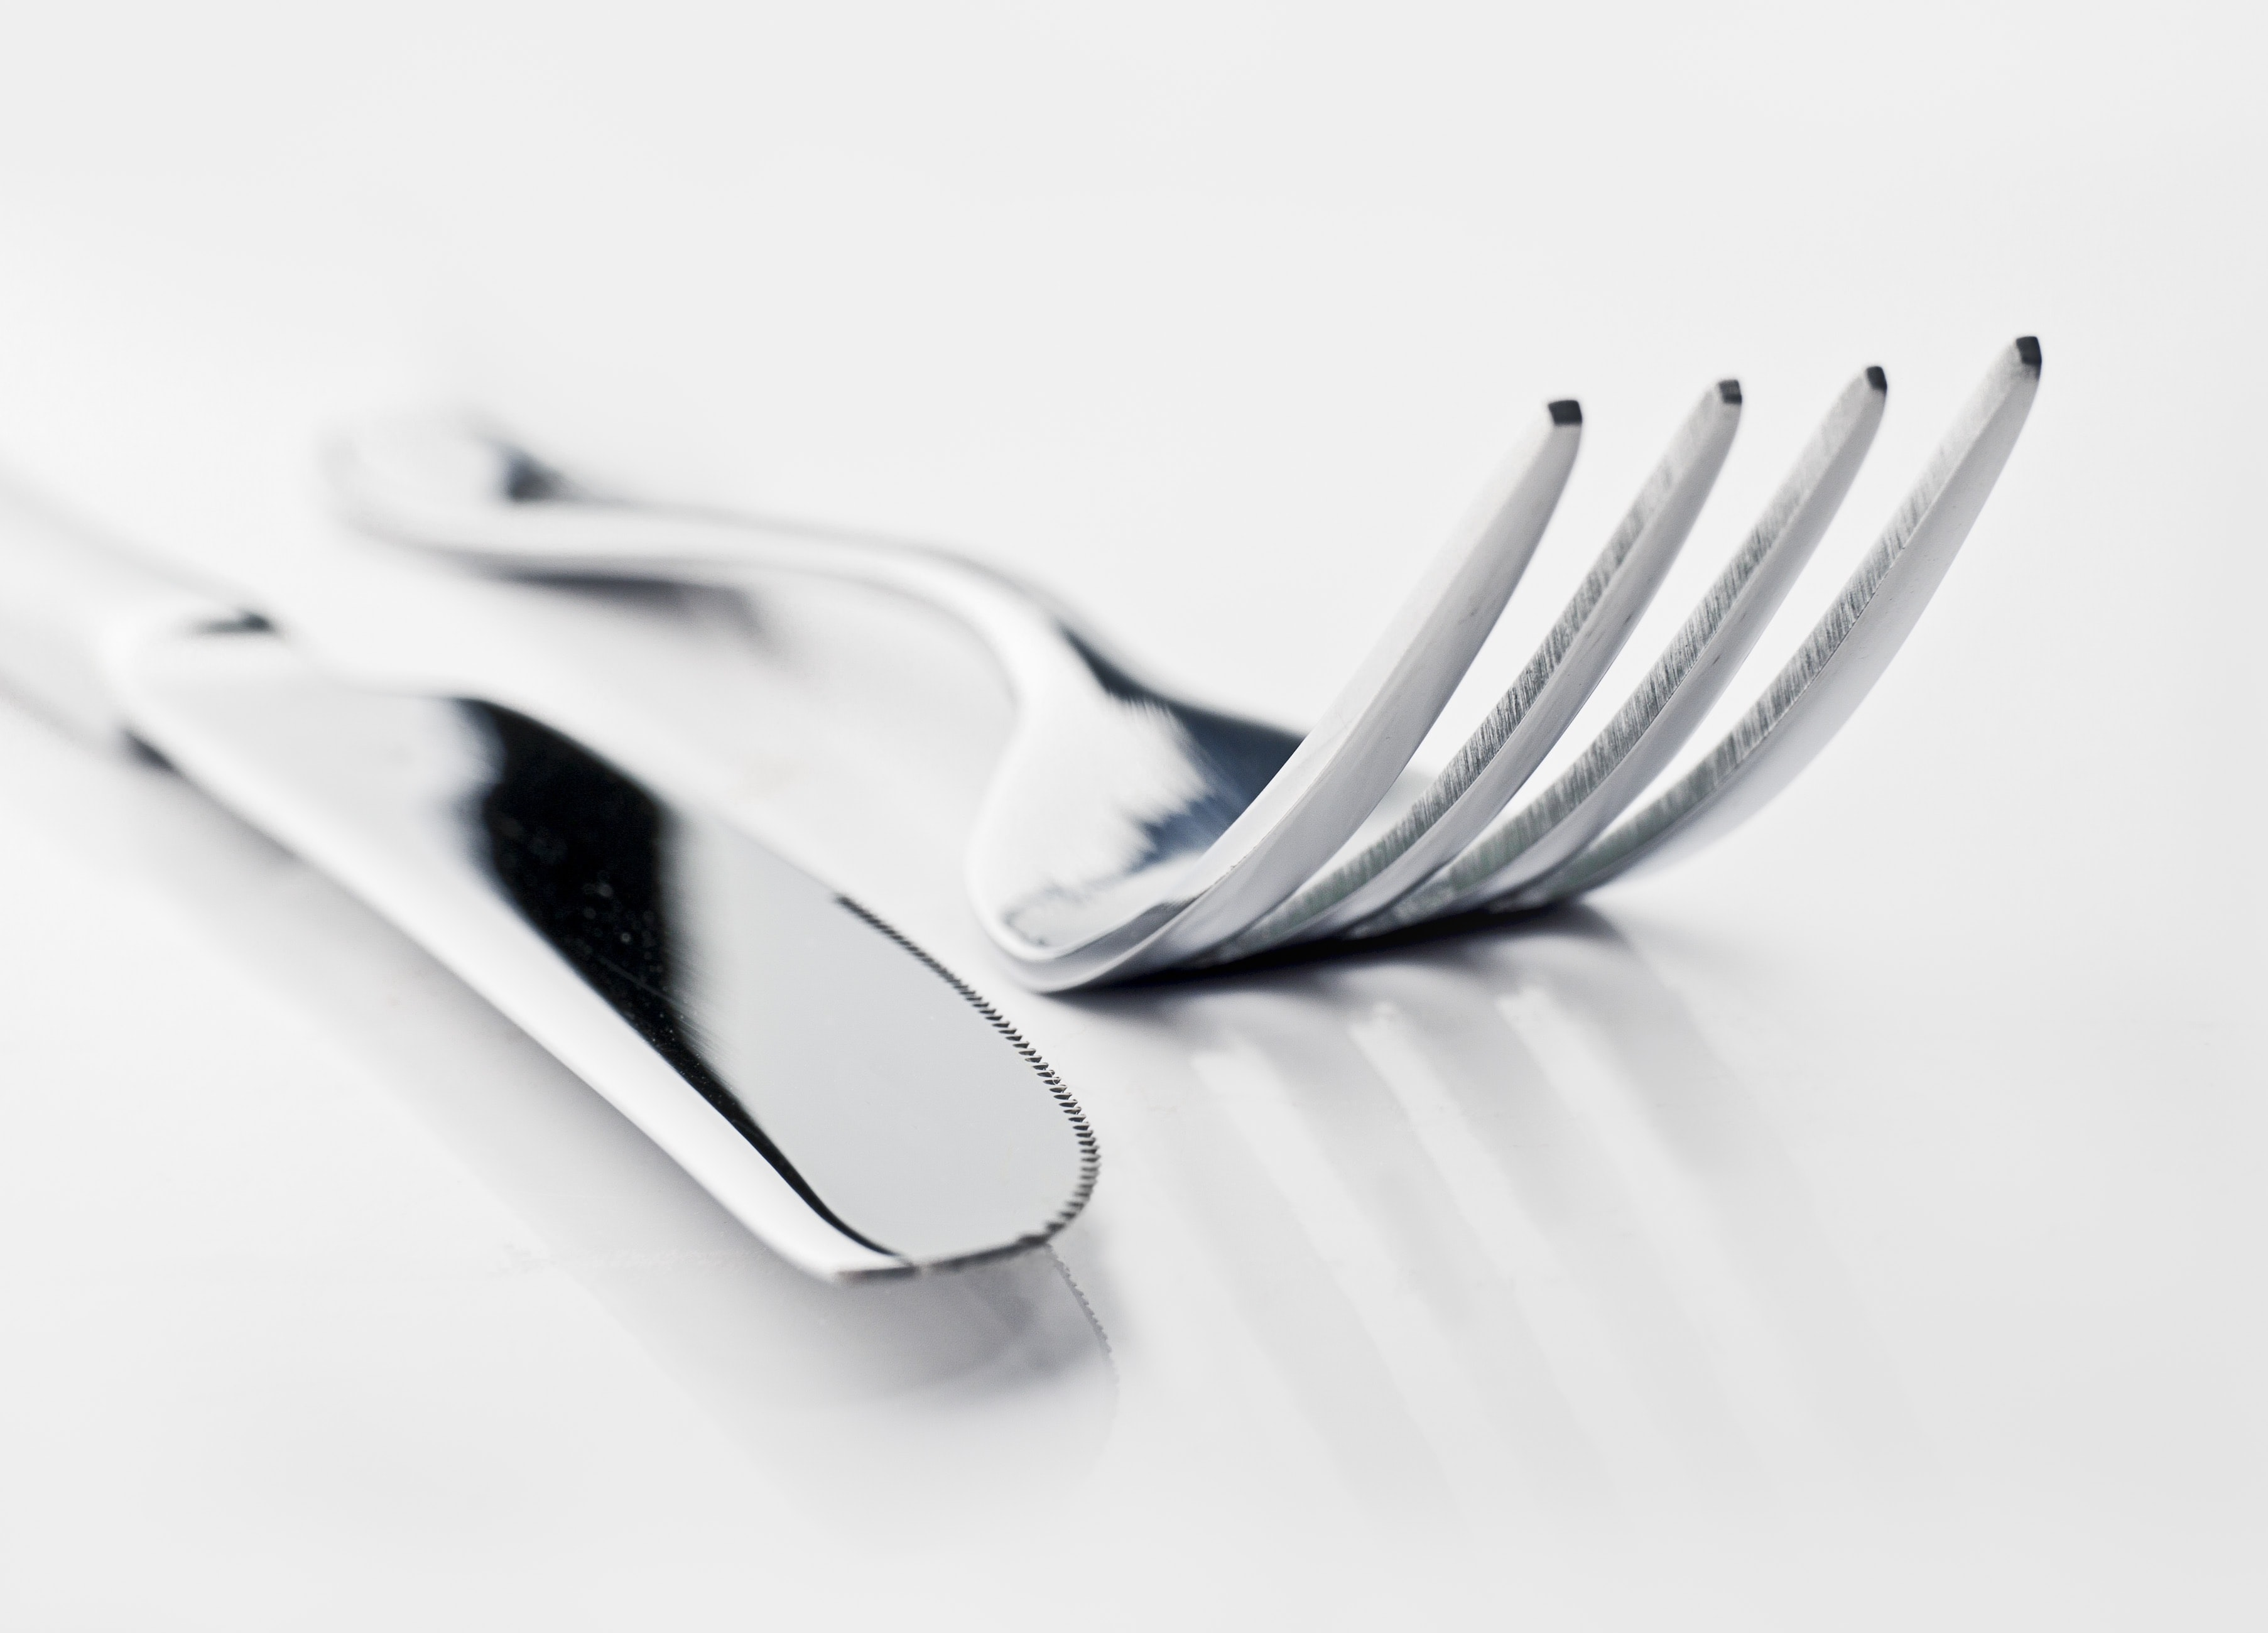 two silver bread knife and fork